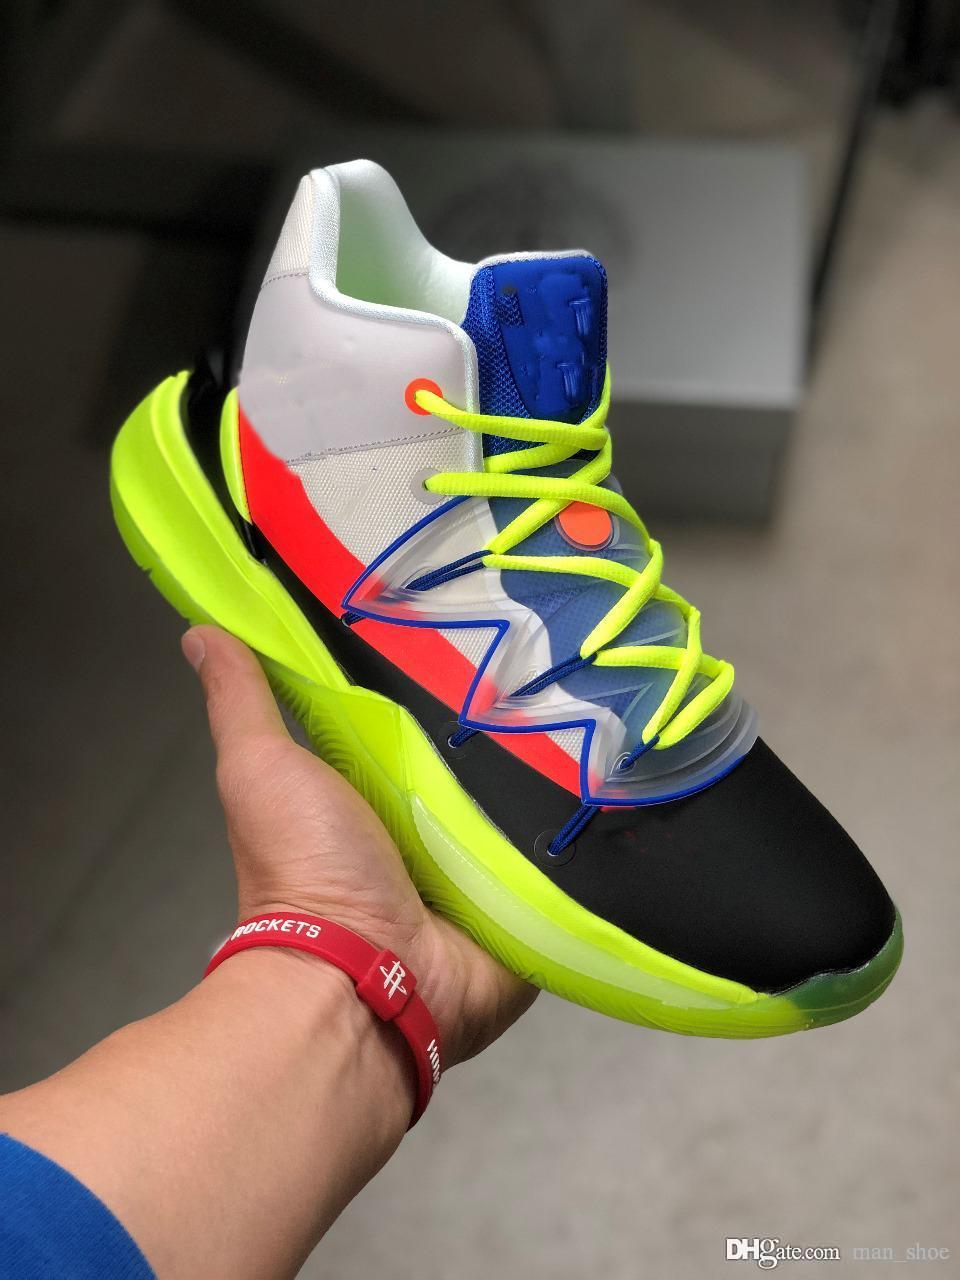 afc1ec1f7c7db 2019 2019 Luxury Rokit Kyrie Sneakers 5 Shoes Zoom Turbo Super Quality  Blends Skate And Hoops Culture In Collaborative Heart Shoes From Man shoe